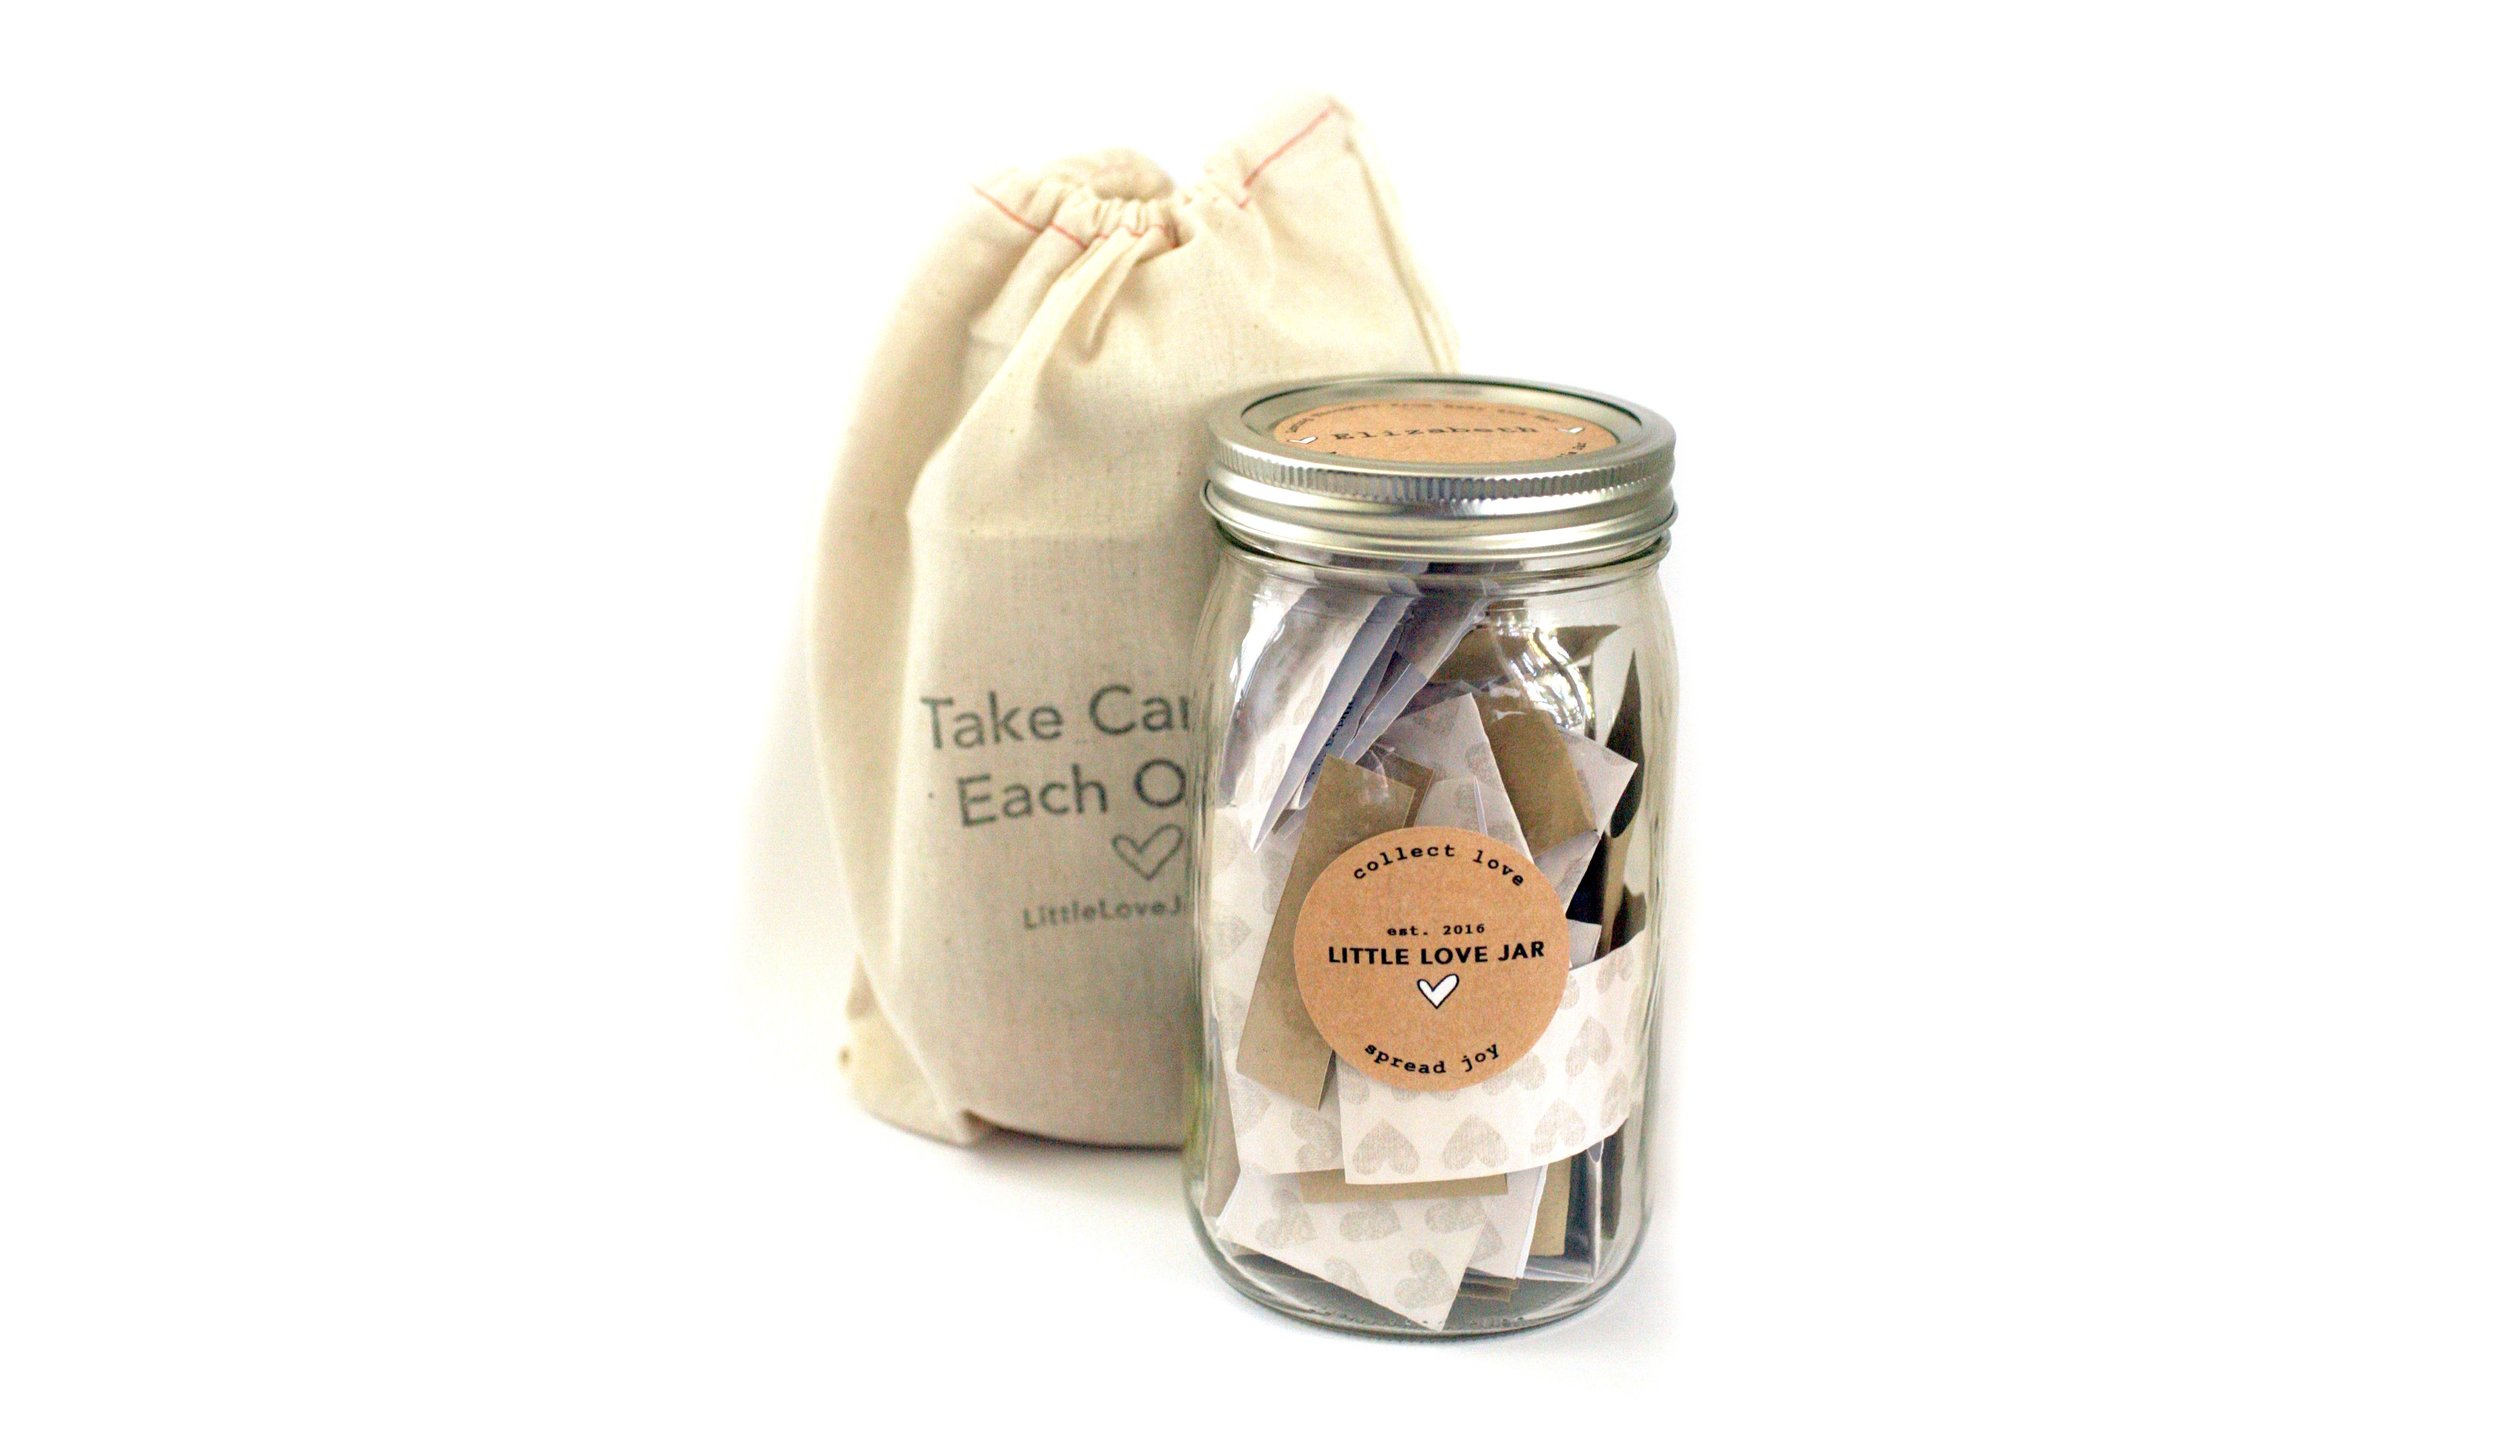 BEST. GIFT. EVER. - A jar overflowing with personalized, heartfelt wishesWe collect notes from you and your friends, put them in a beautiful jar and send it to your loved one. People say Little Love Jar is the most meaningful gift they've ever received- one they keep forever